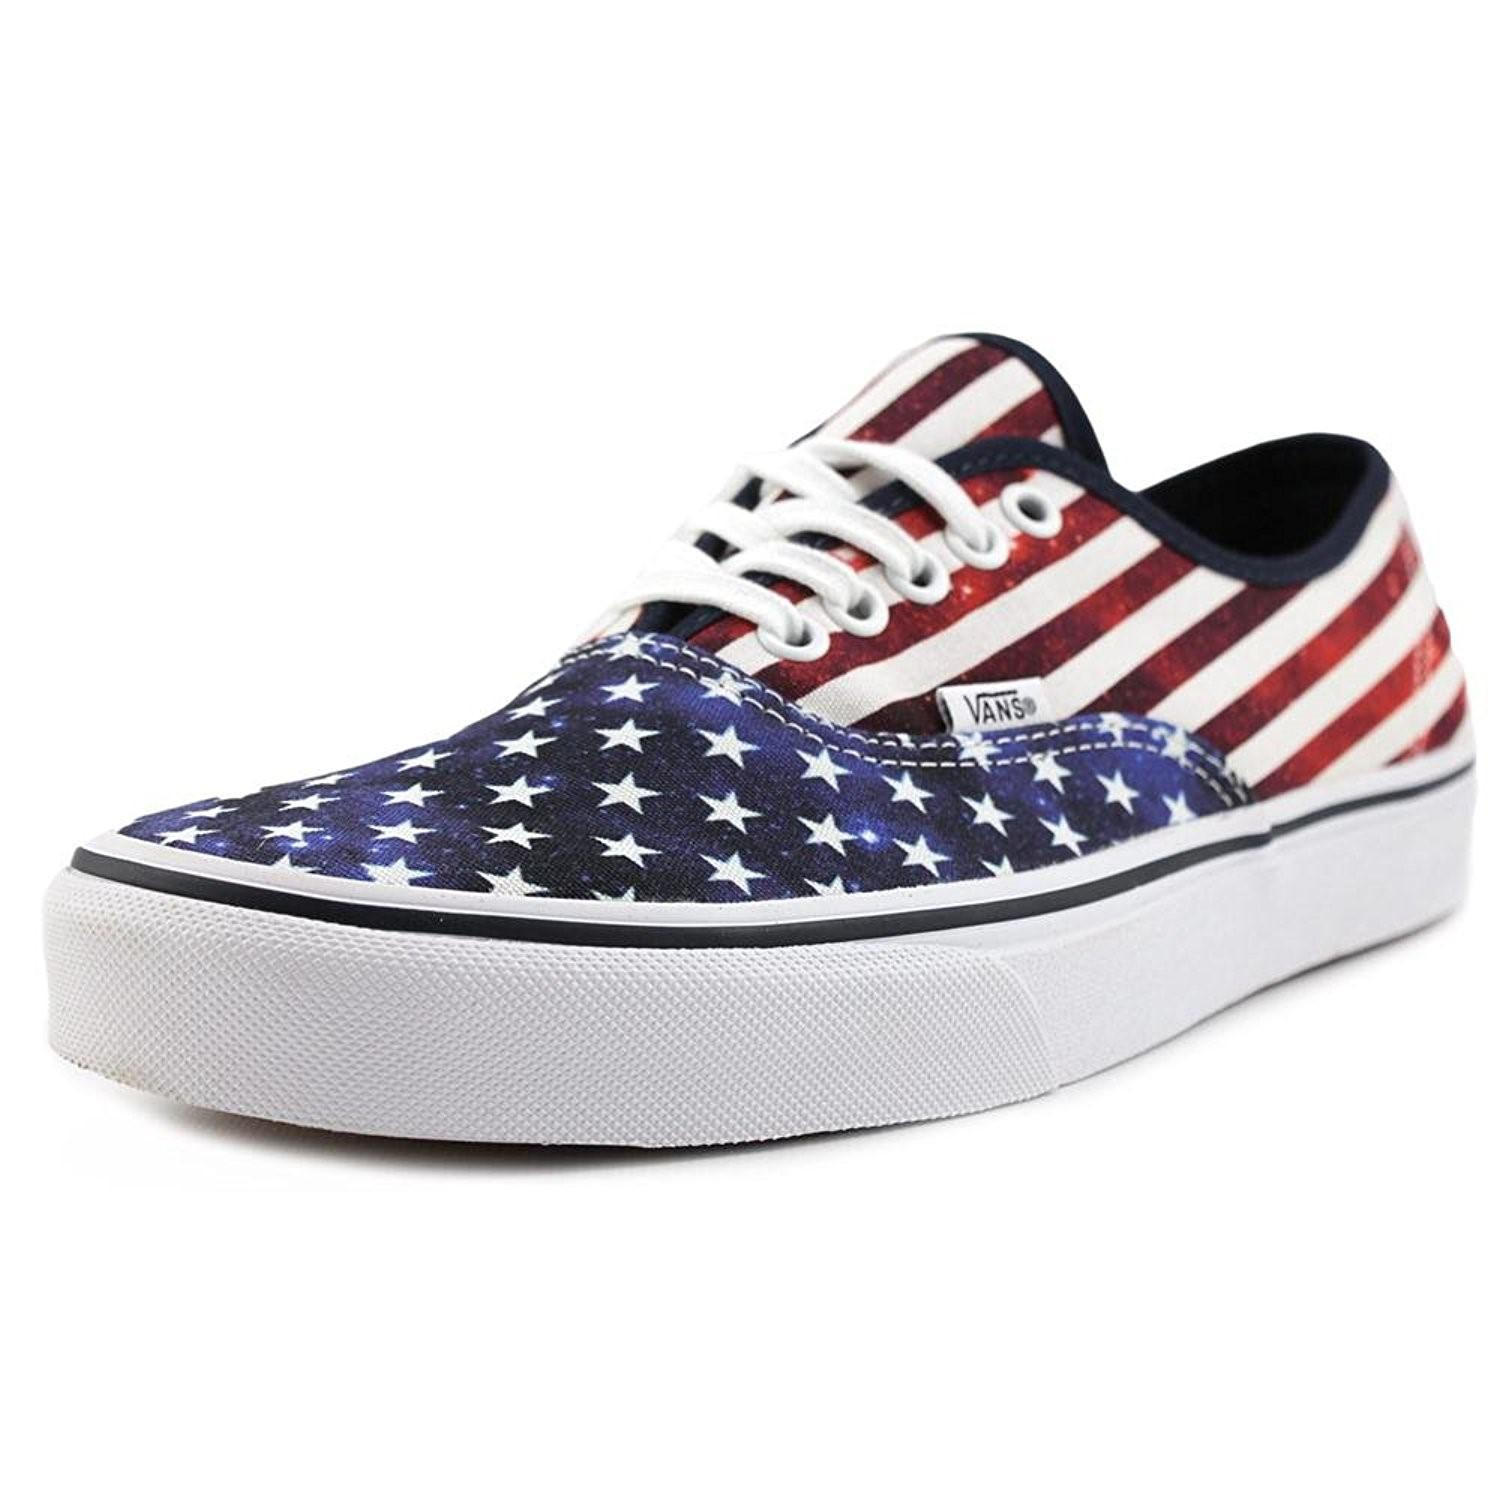 3a736e75b703a Lyst - Vans Authentic Dress Blues T Mens Lace Up Sneakers in Blue ...